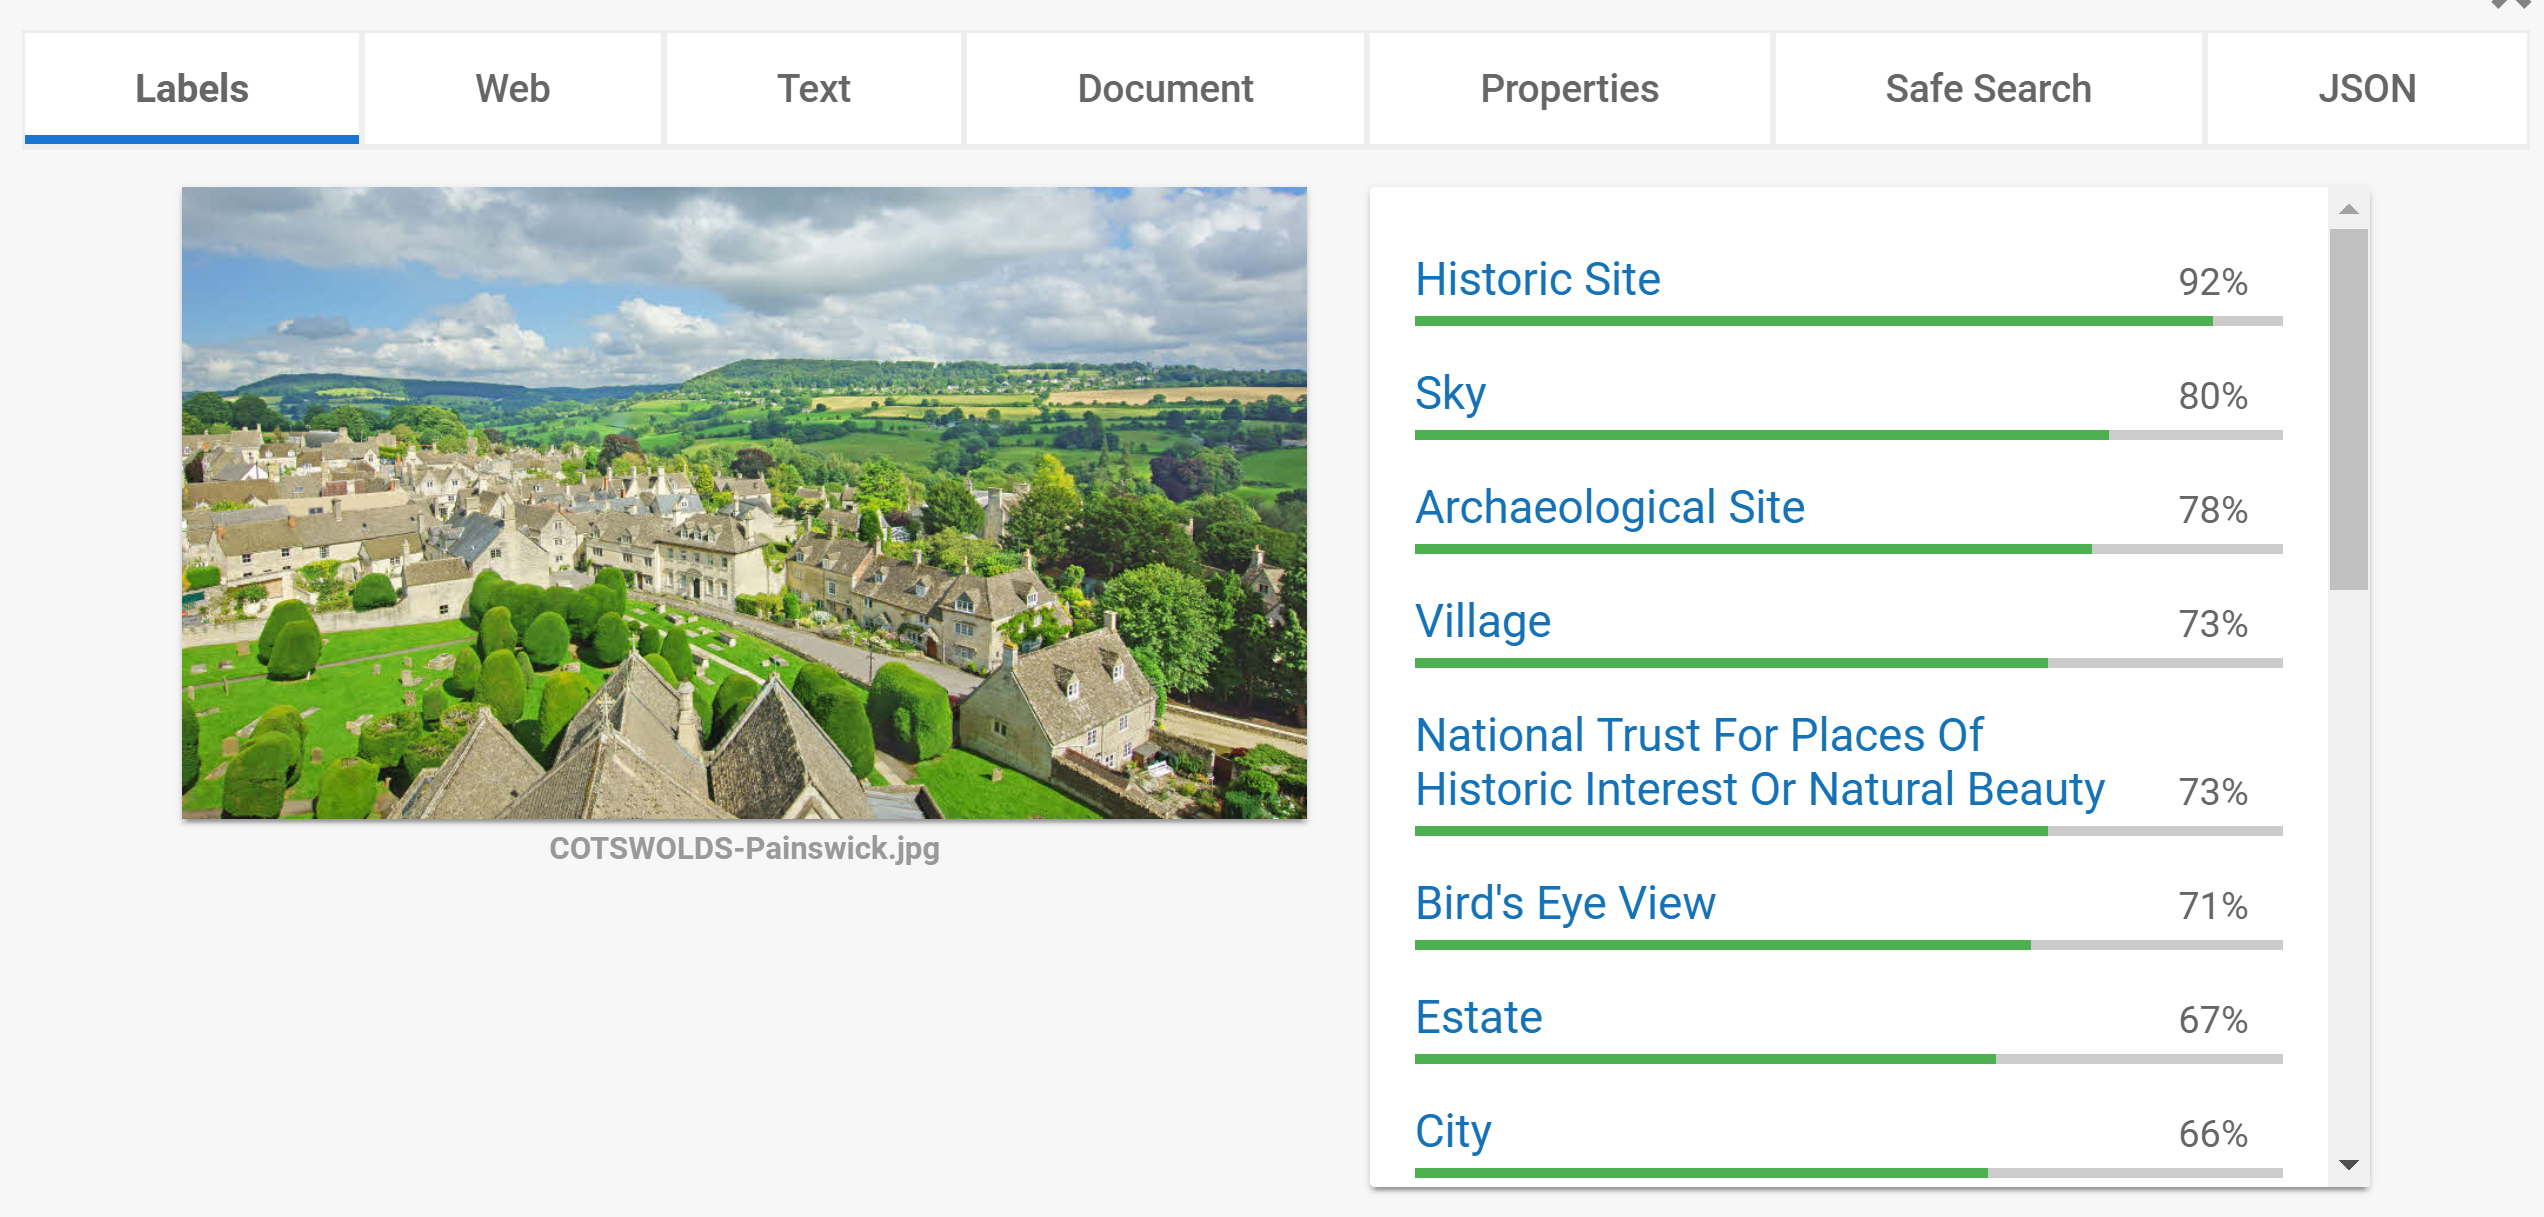 'Google Vision on the Cotswolds'